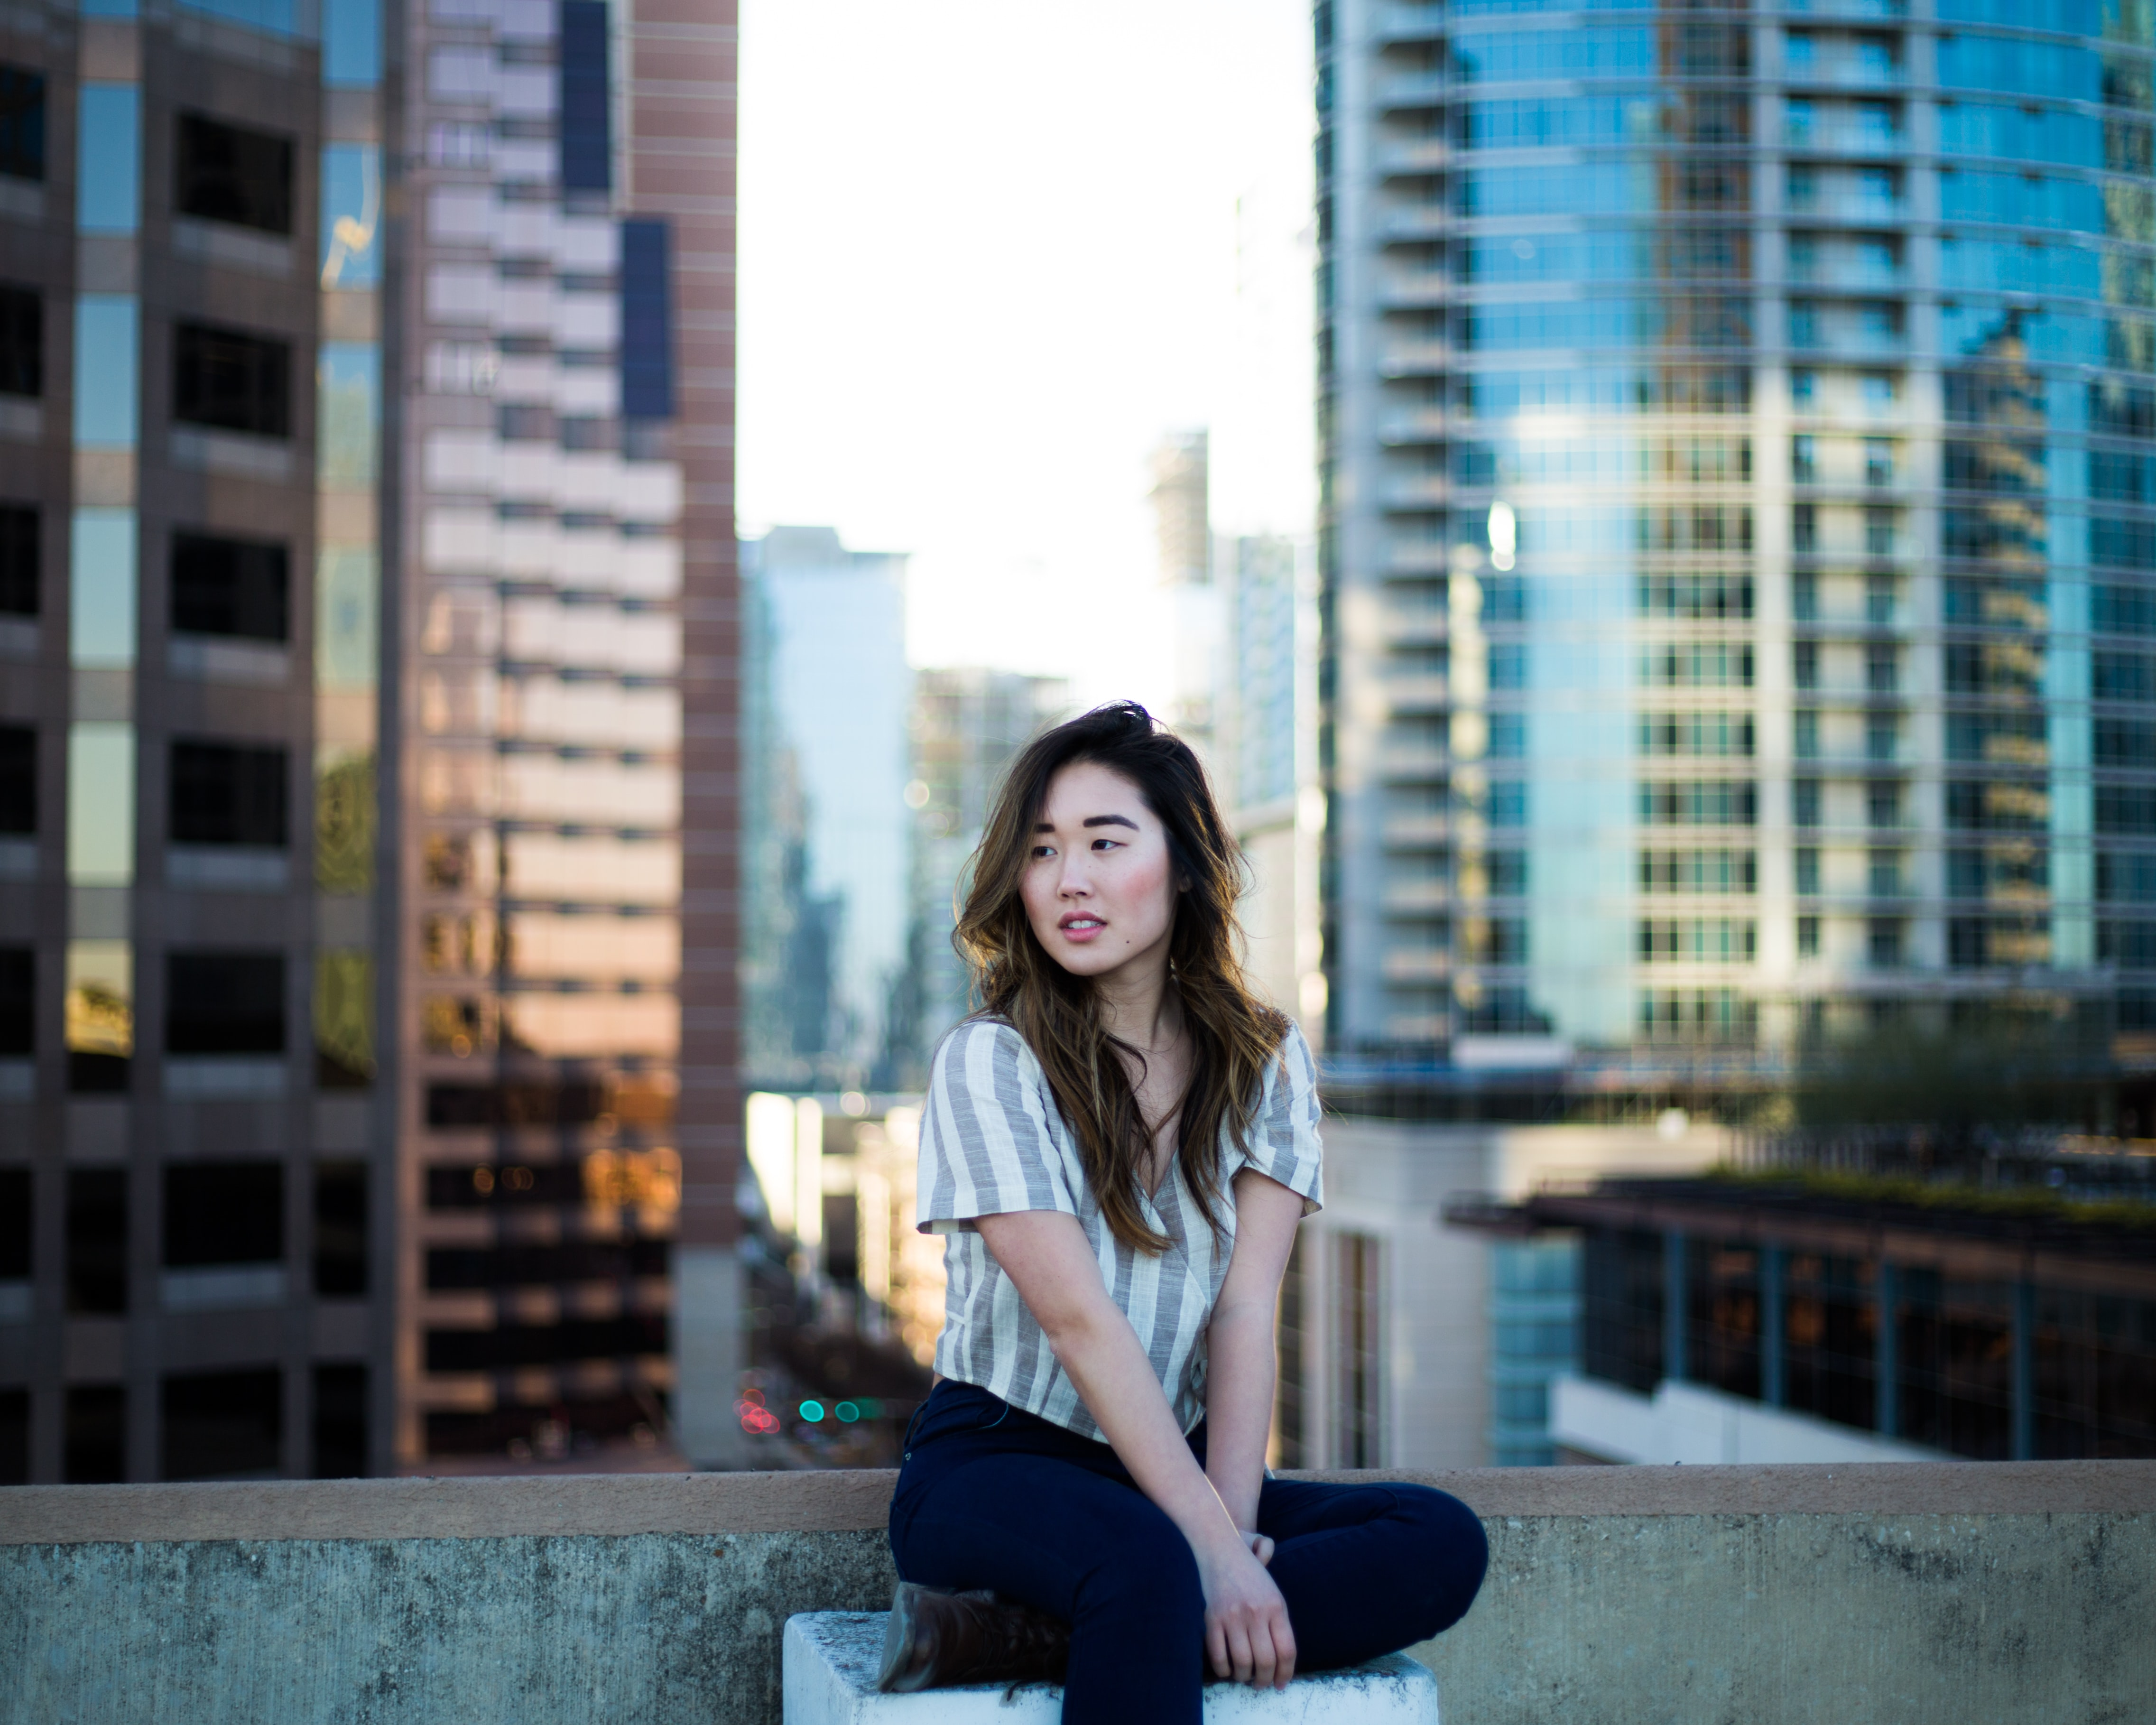 selective focus photography of woman in gray shirt sitting near building edge